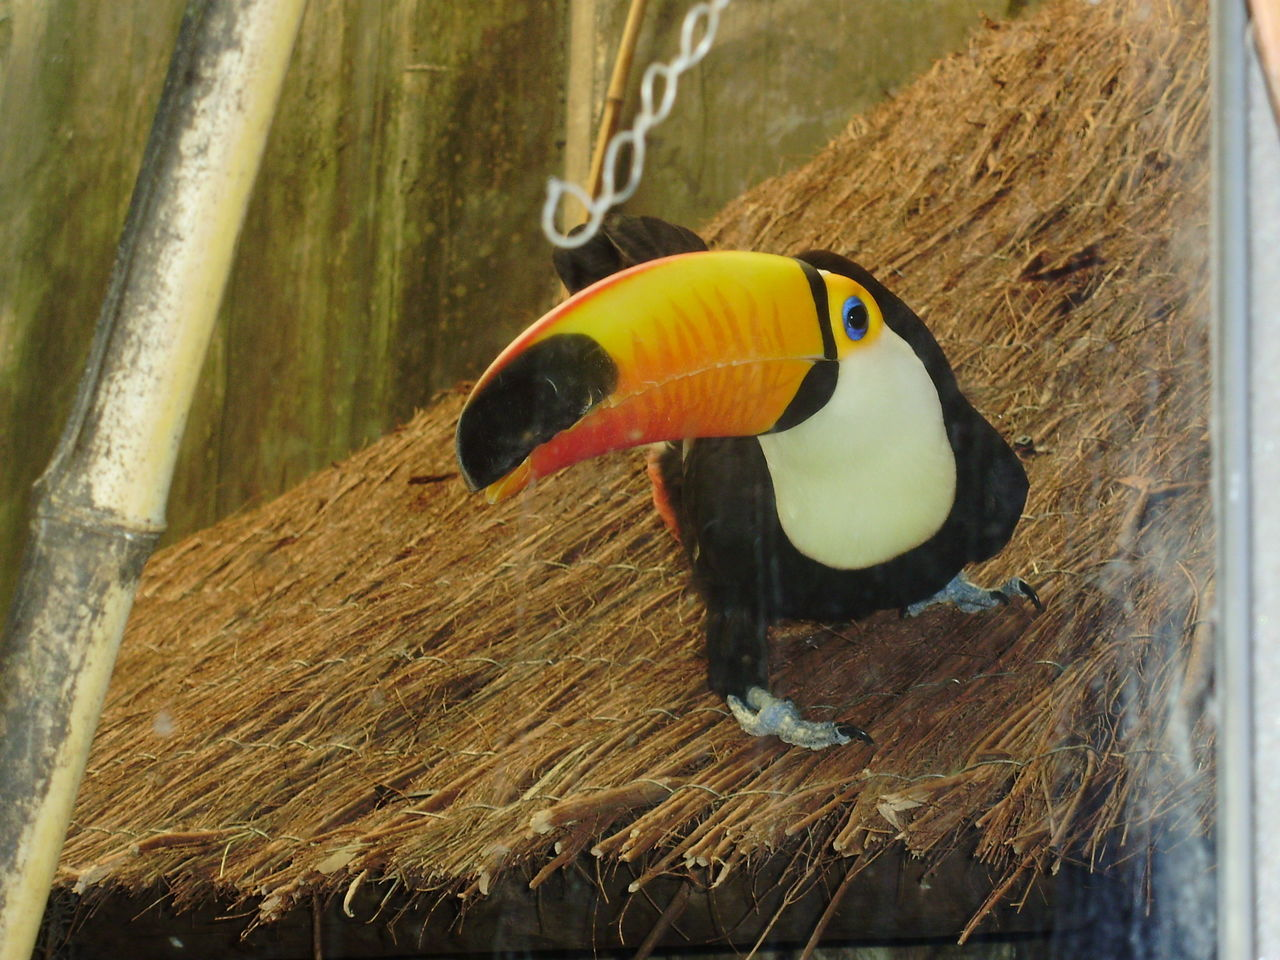 Animal Themes Animals In The Wild Bird Close-up Day Nature No People One Animal Outdoors Savannah Toucan Tucan Tucano